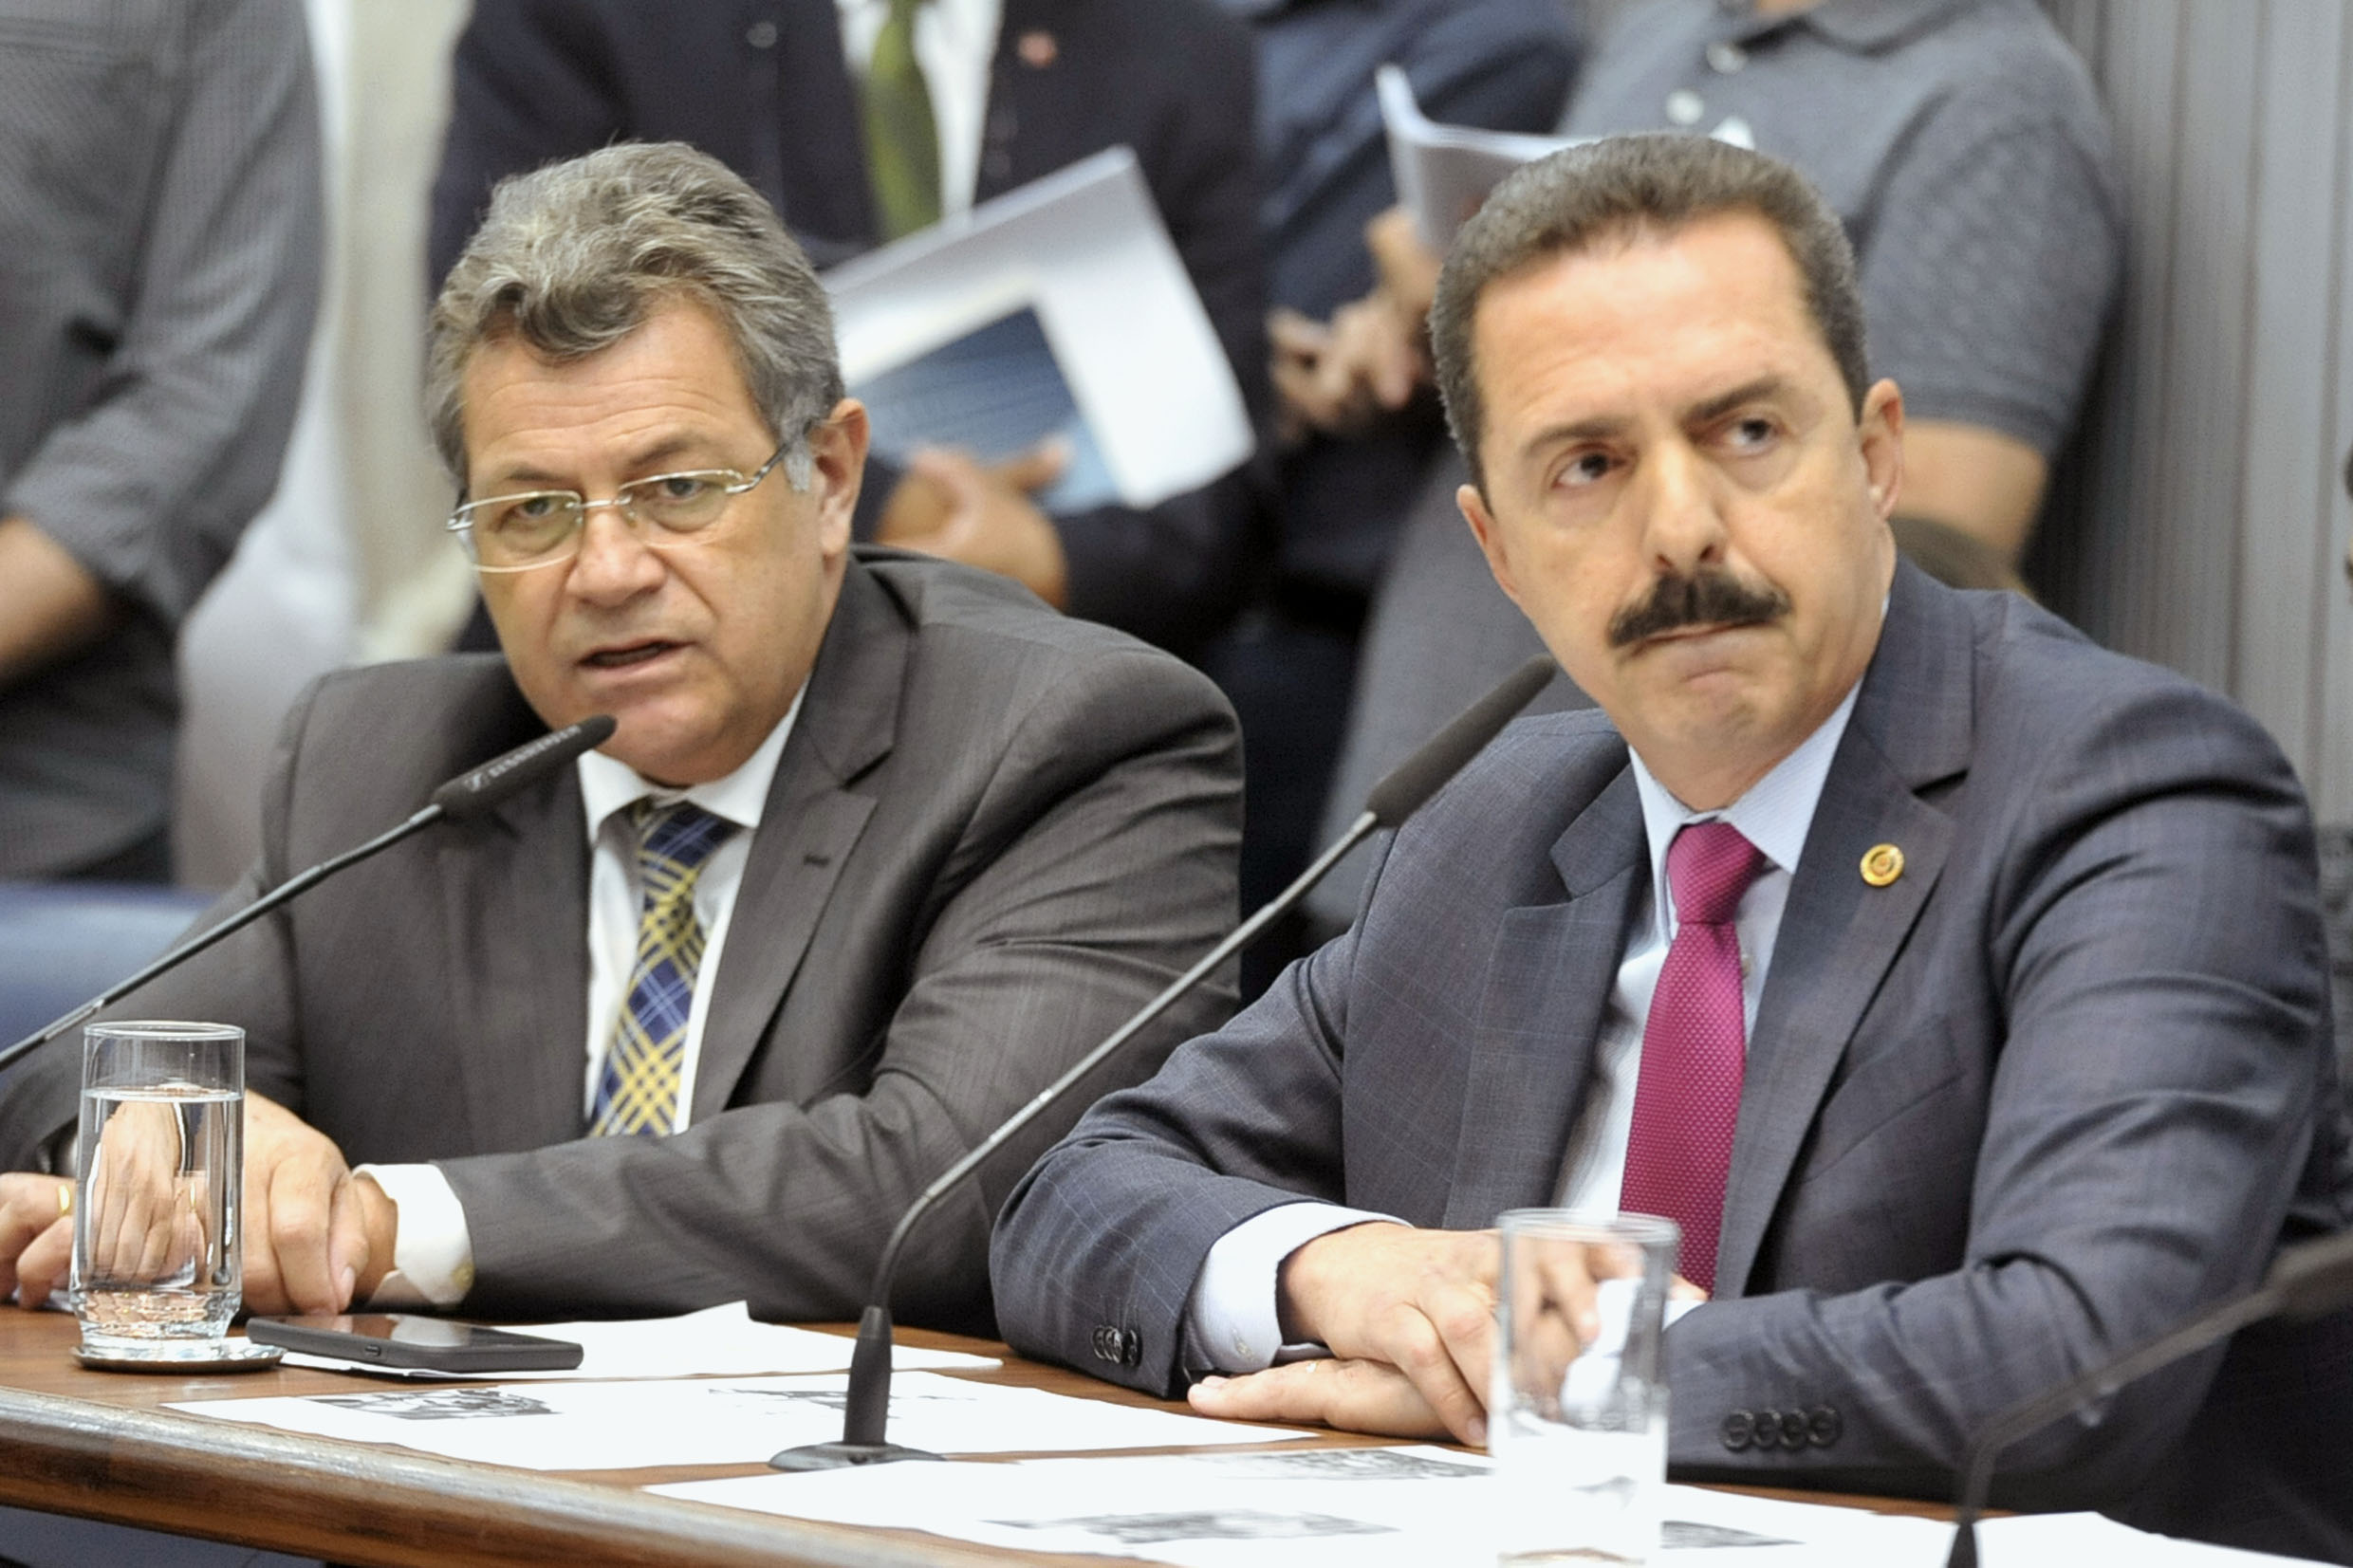 Parlamentares na comissão<a style='float:right' href='https://www3.al.sp.gov.br/repositorio/noticia/N-05-2019/fg234190.jpg' target=_blank><img src='/_img/material-file-download-white.png' width='14px' alt='Clique para baixar a imagem'></a>